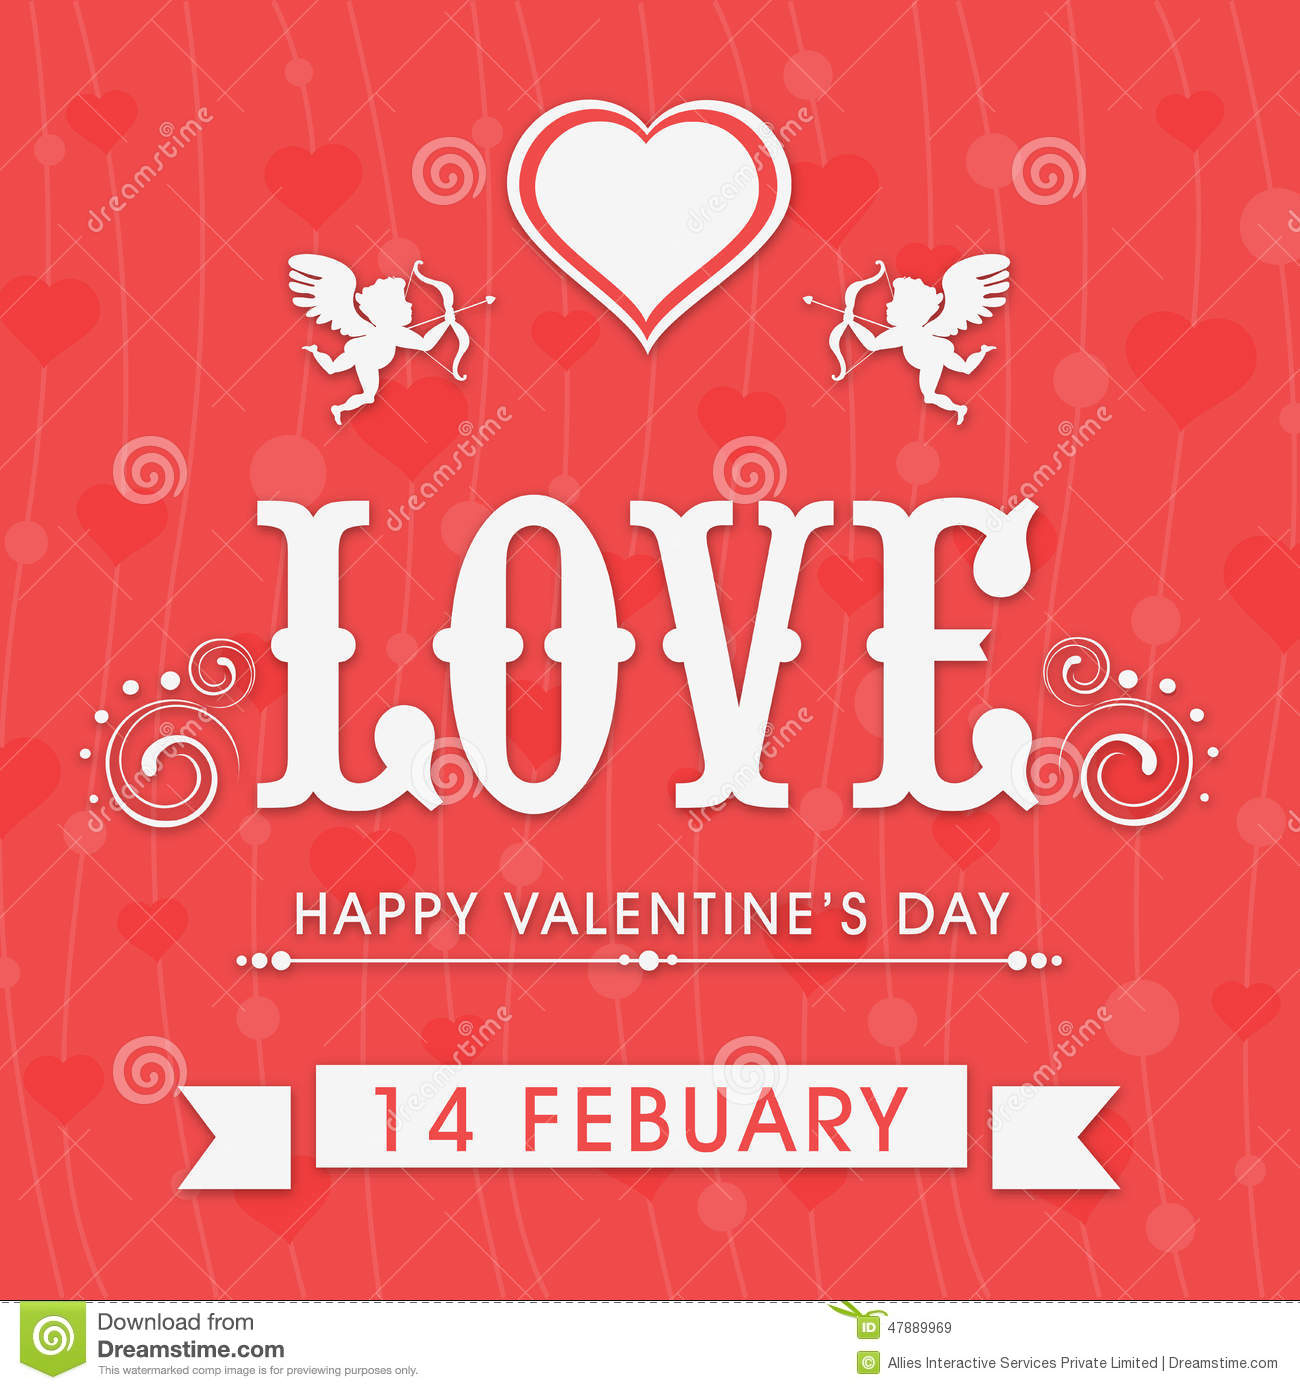 Beautiful Greeting Cards For Happy Valentines Day Celebration